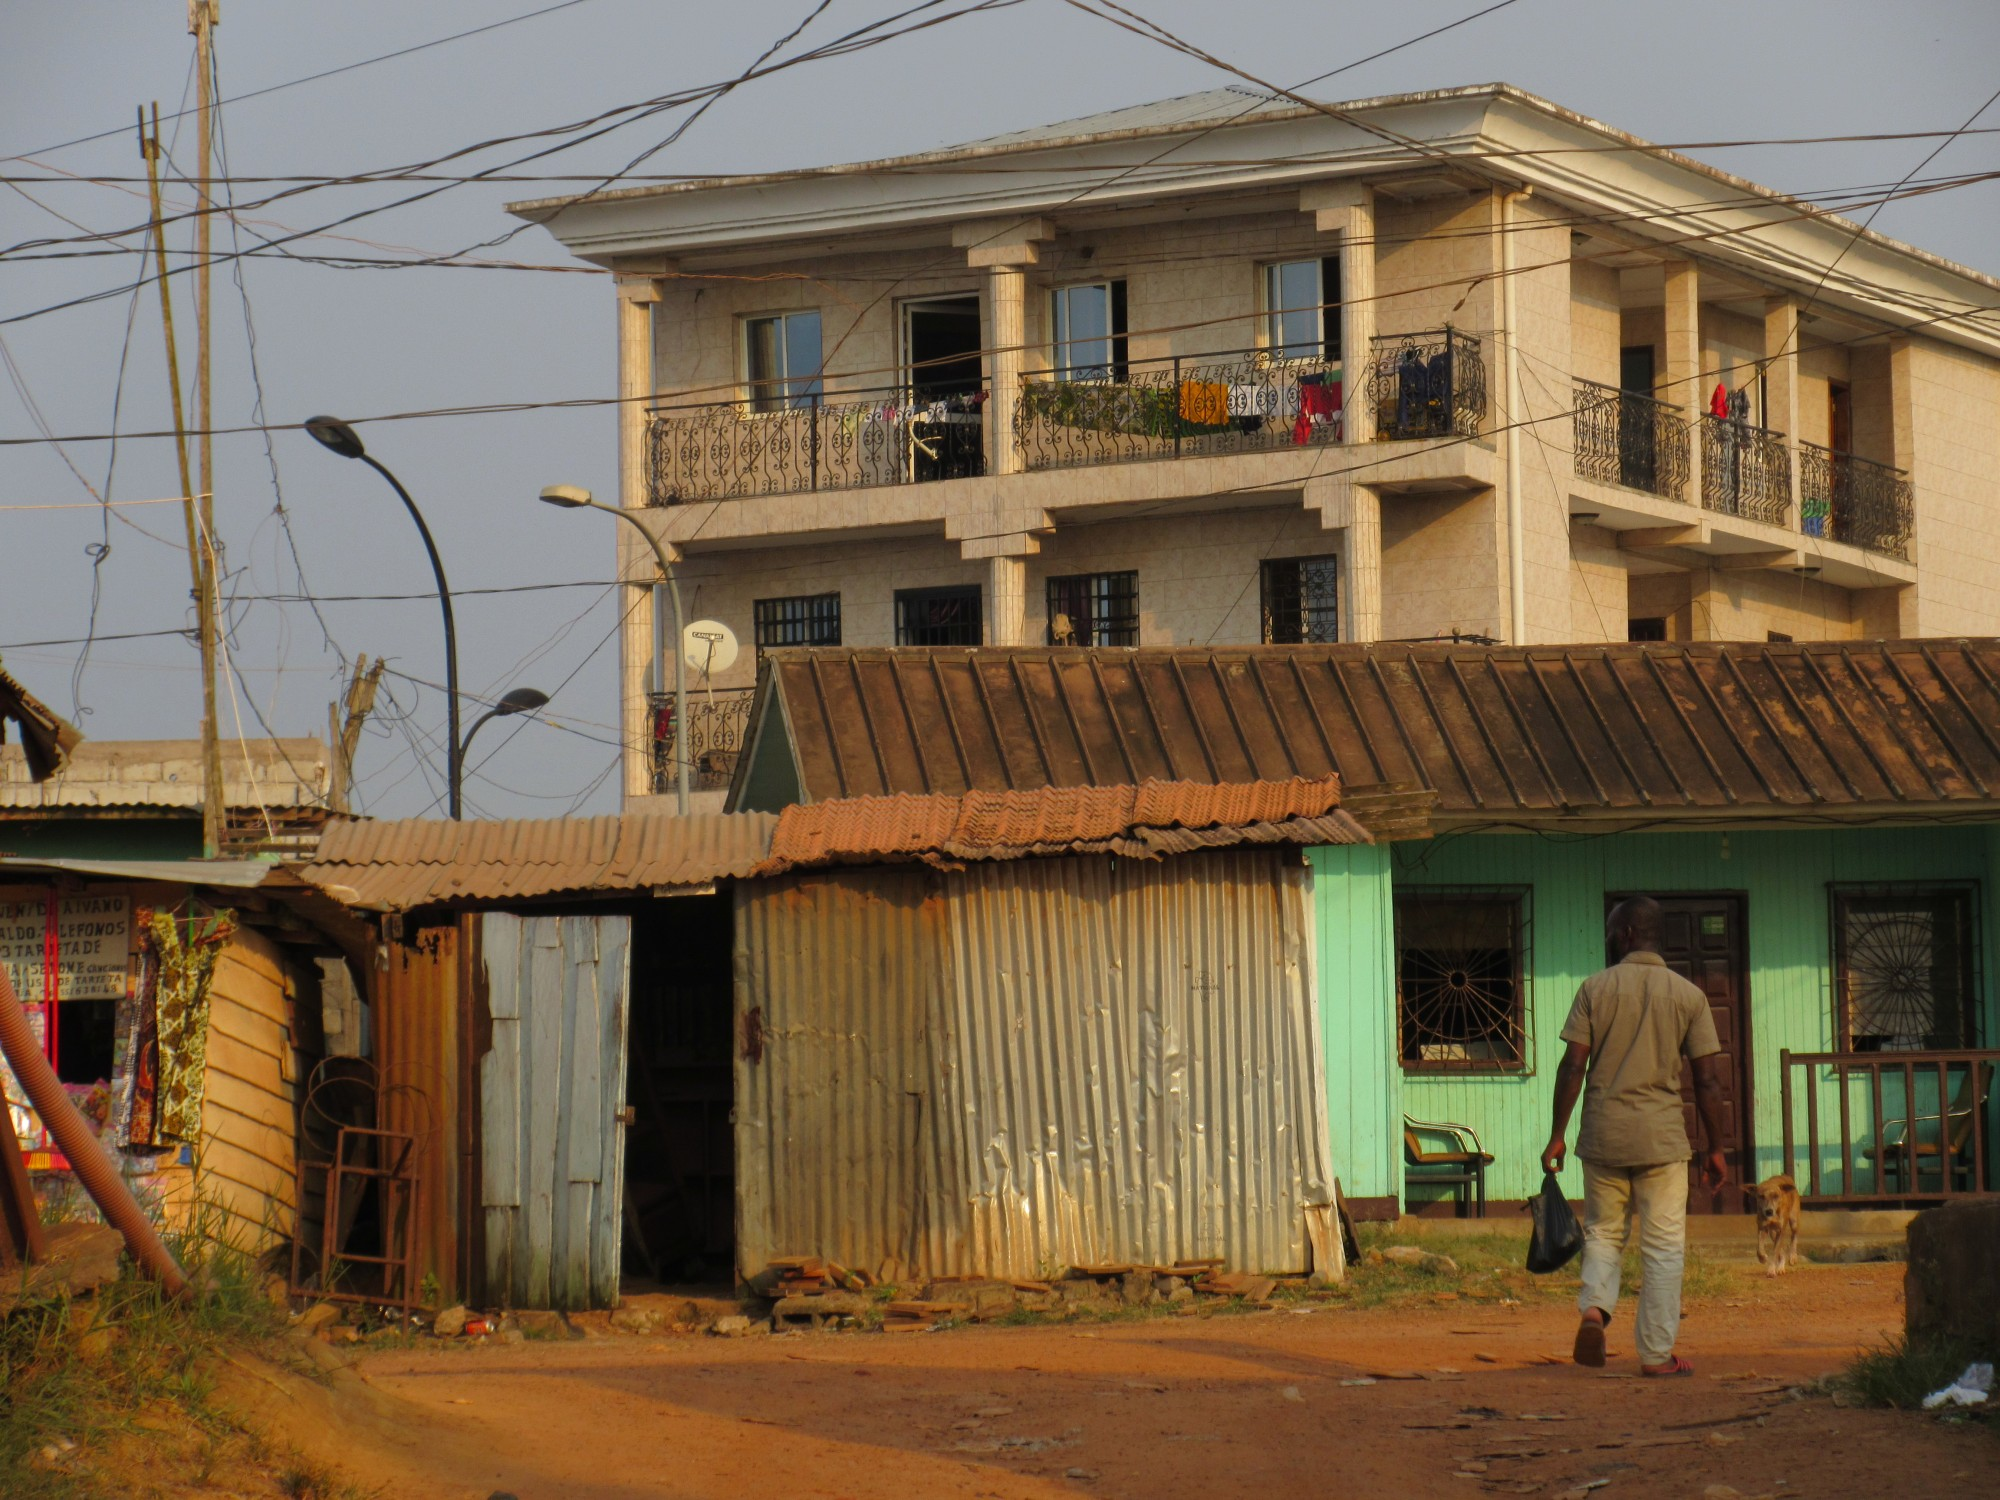 Equatorial Guinea and EITI candidacy, slow but steady progress?